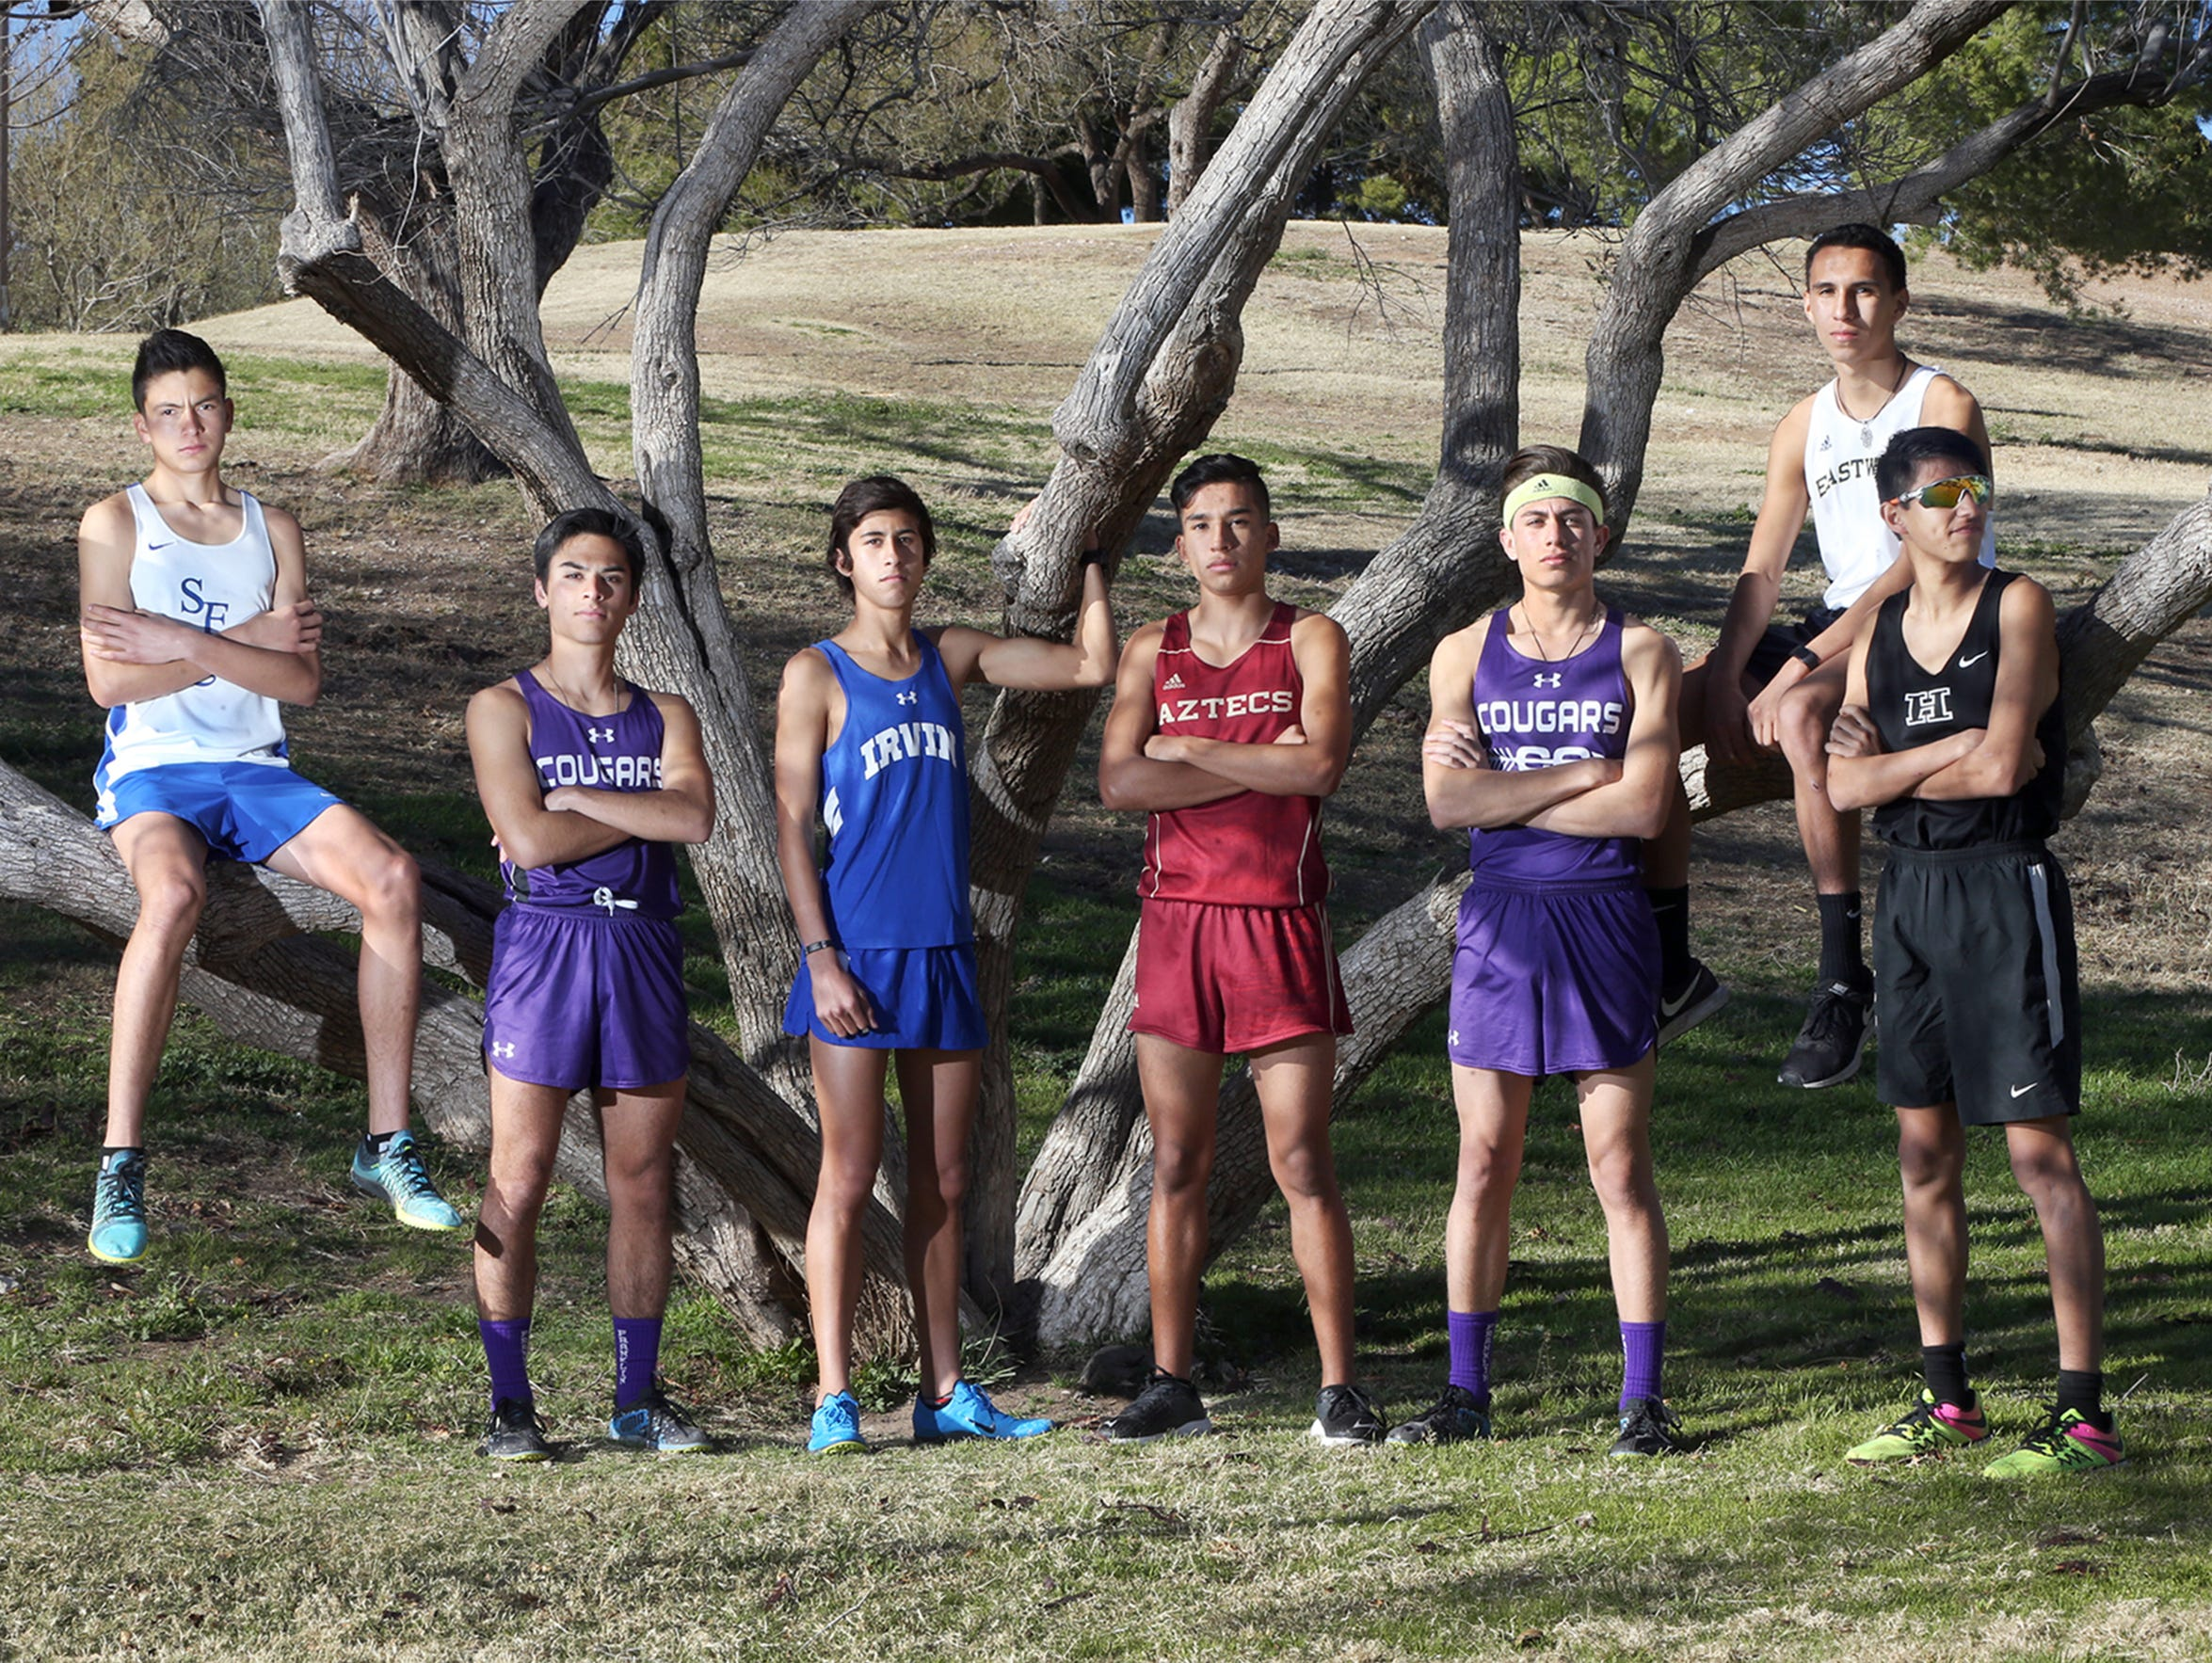 The athletes on the El Paso Times boys All City Cross